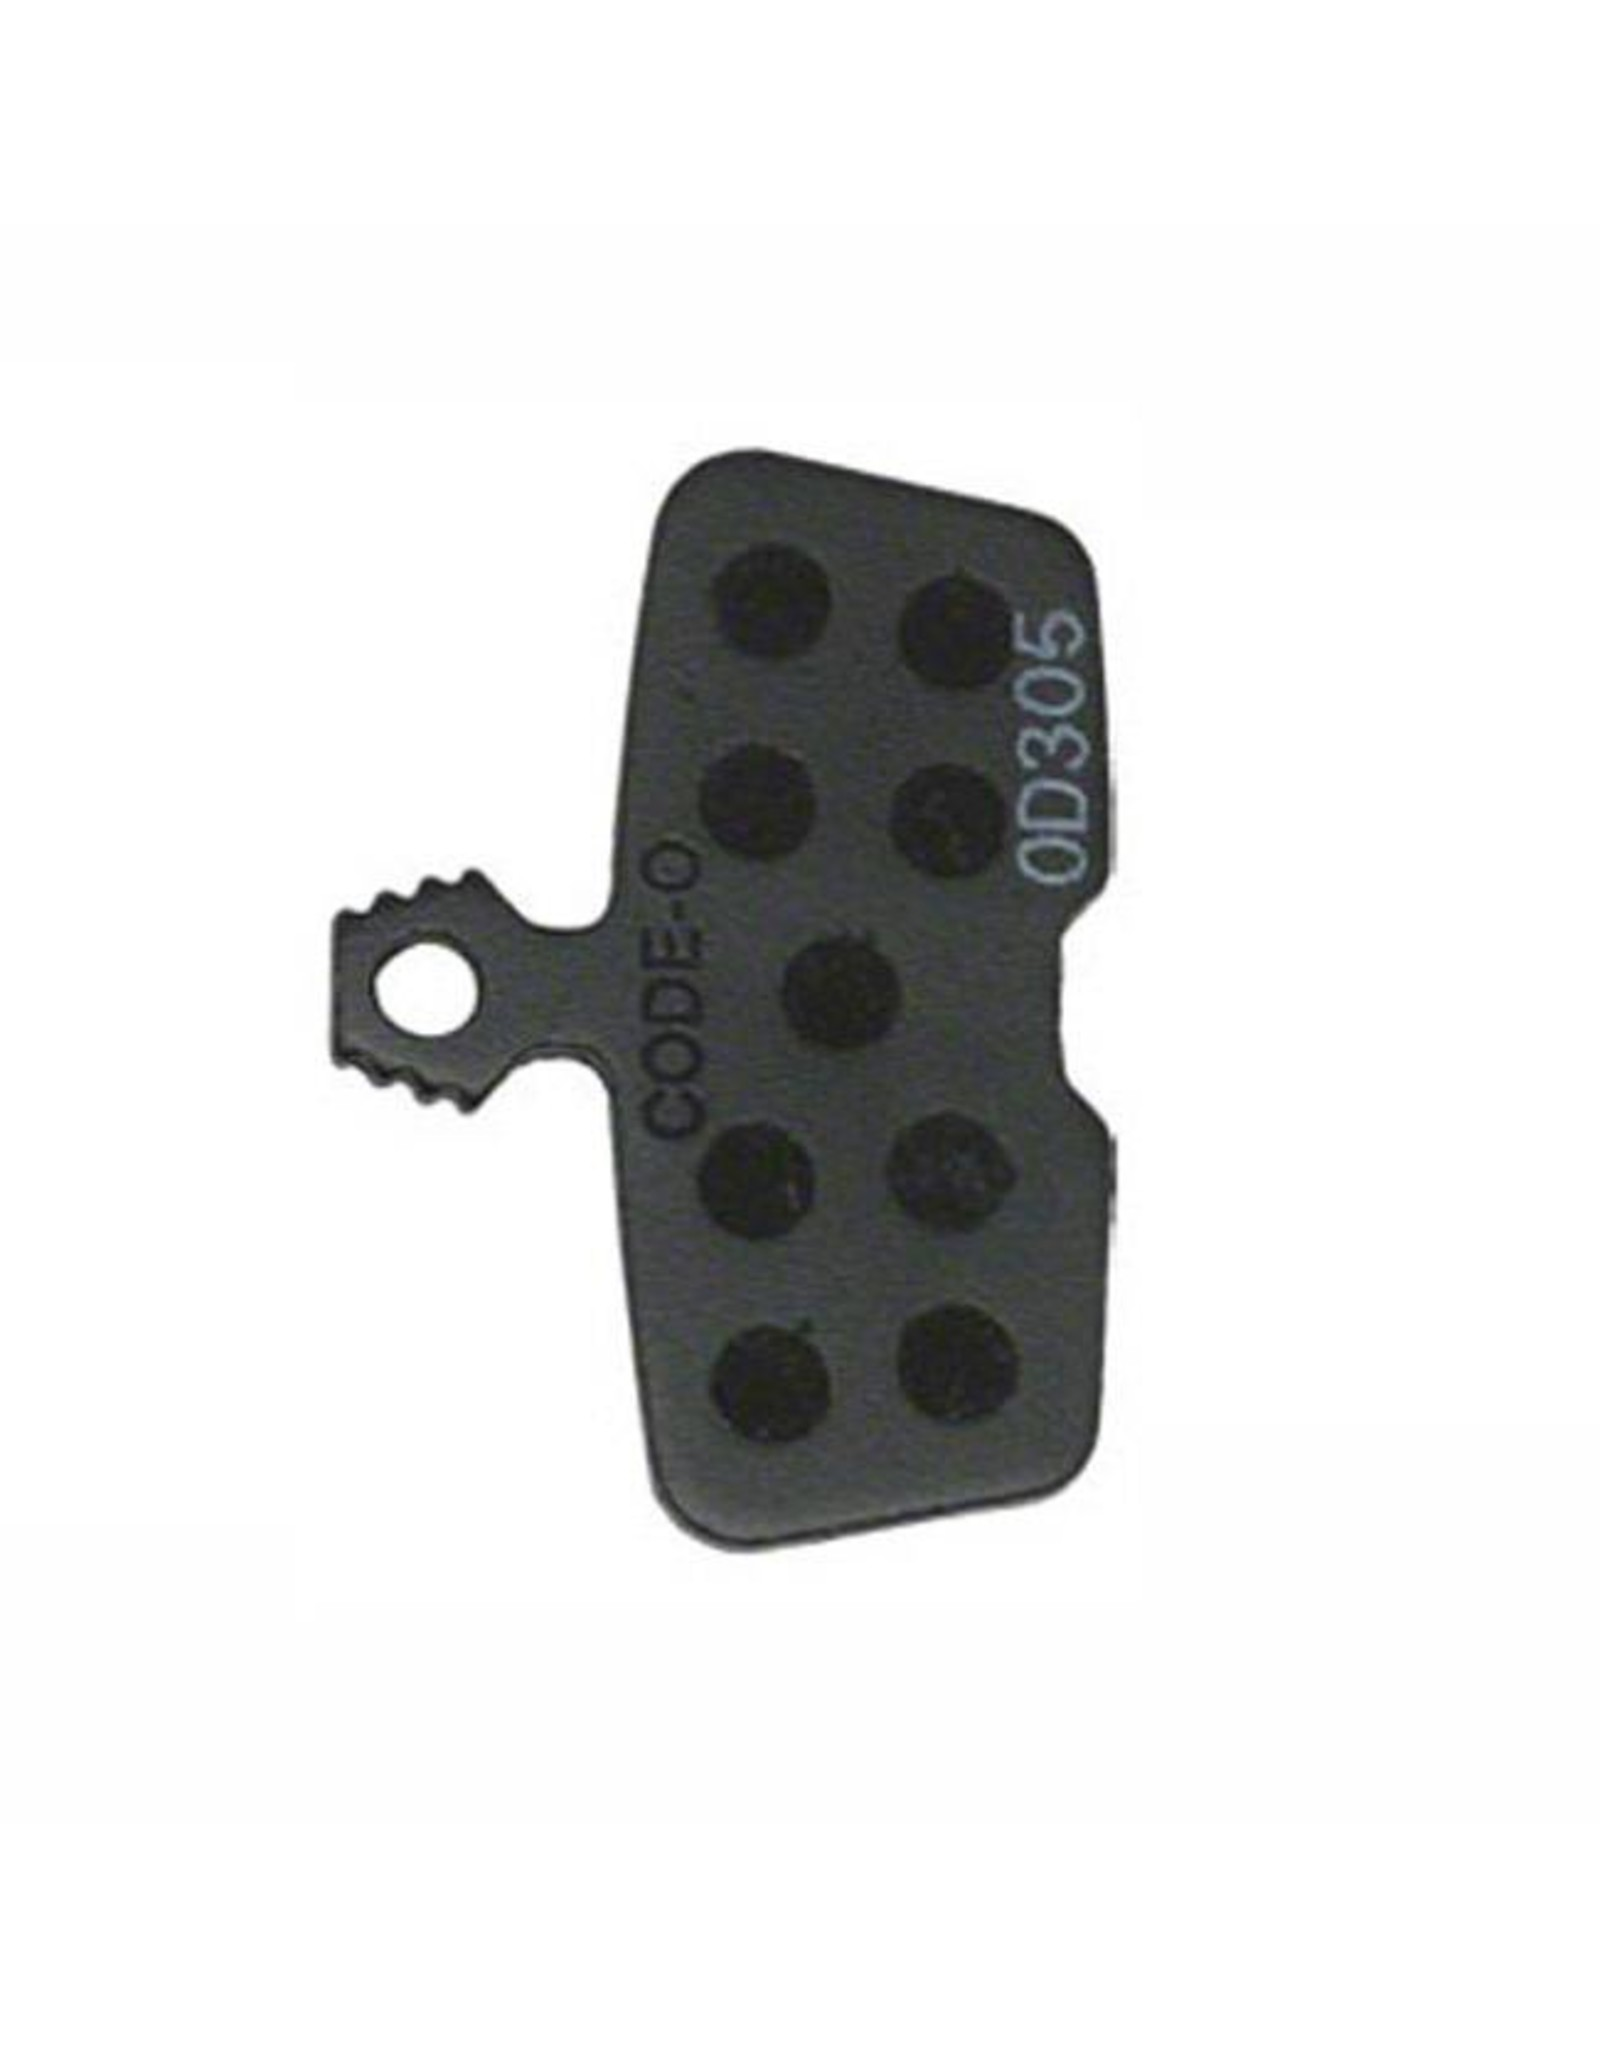 SRAM SRAM/Avid Code, Code RSC, Code R, Guide RE Organic Disc Brake Pad, Steel Back, Pair